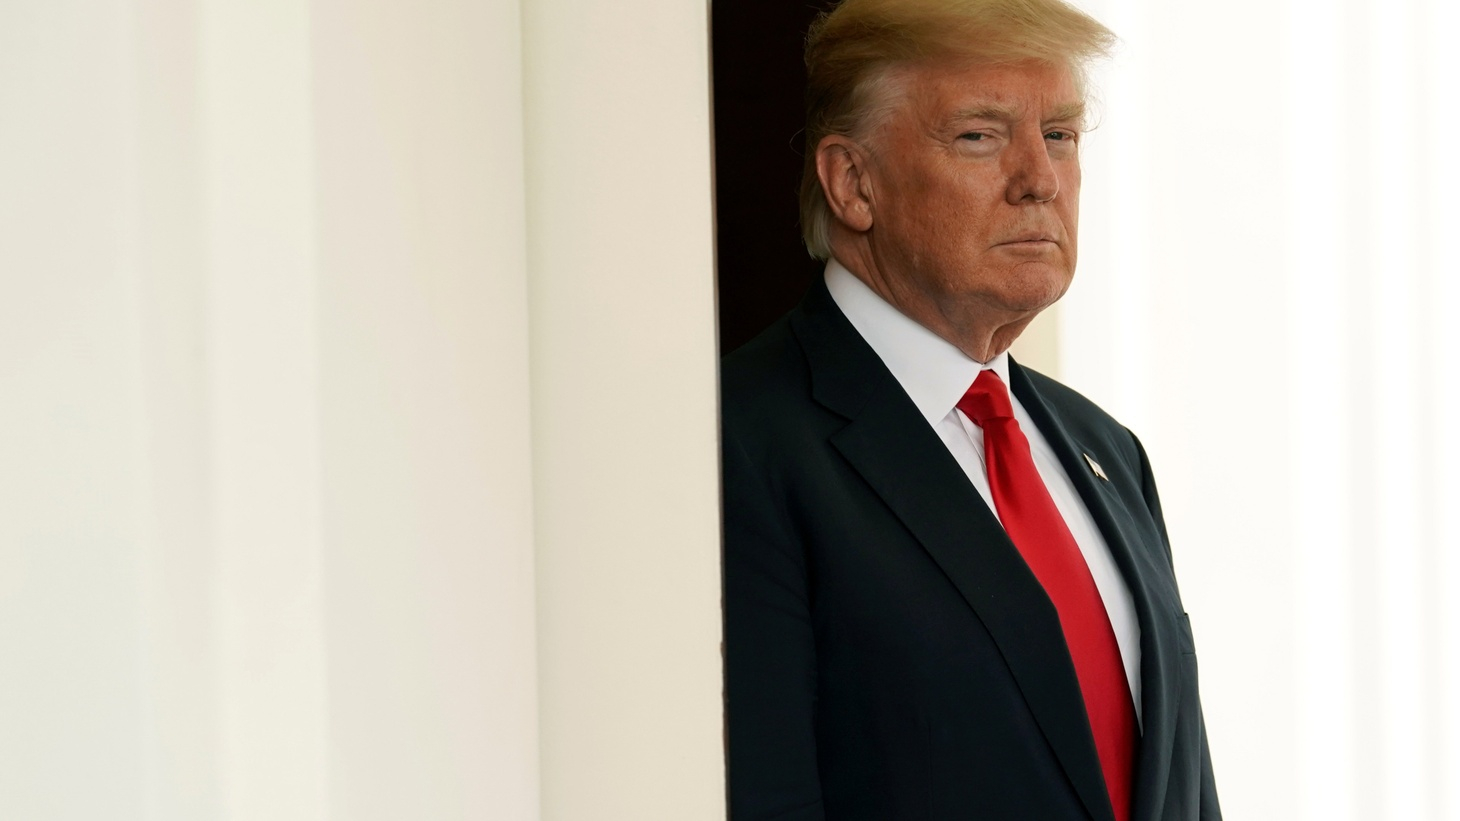 President Trump is reportedly ready to pull the US out of the Paris Agreement on Climate Change. We look at the possible consequences. On the second half of the program, we hear about cuts in Obama-Era civil rights programs called for by the Trump Administration's first budget plan.